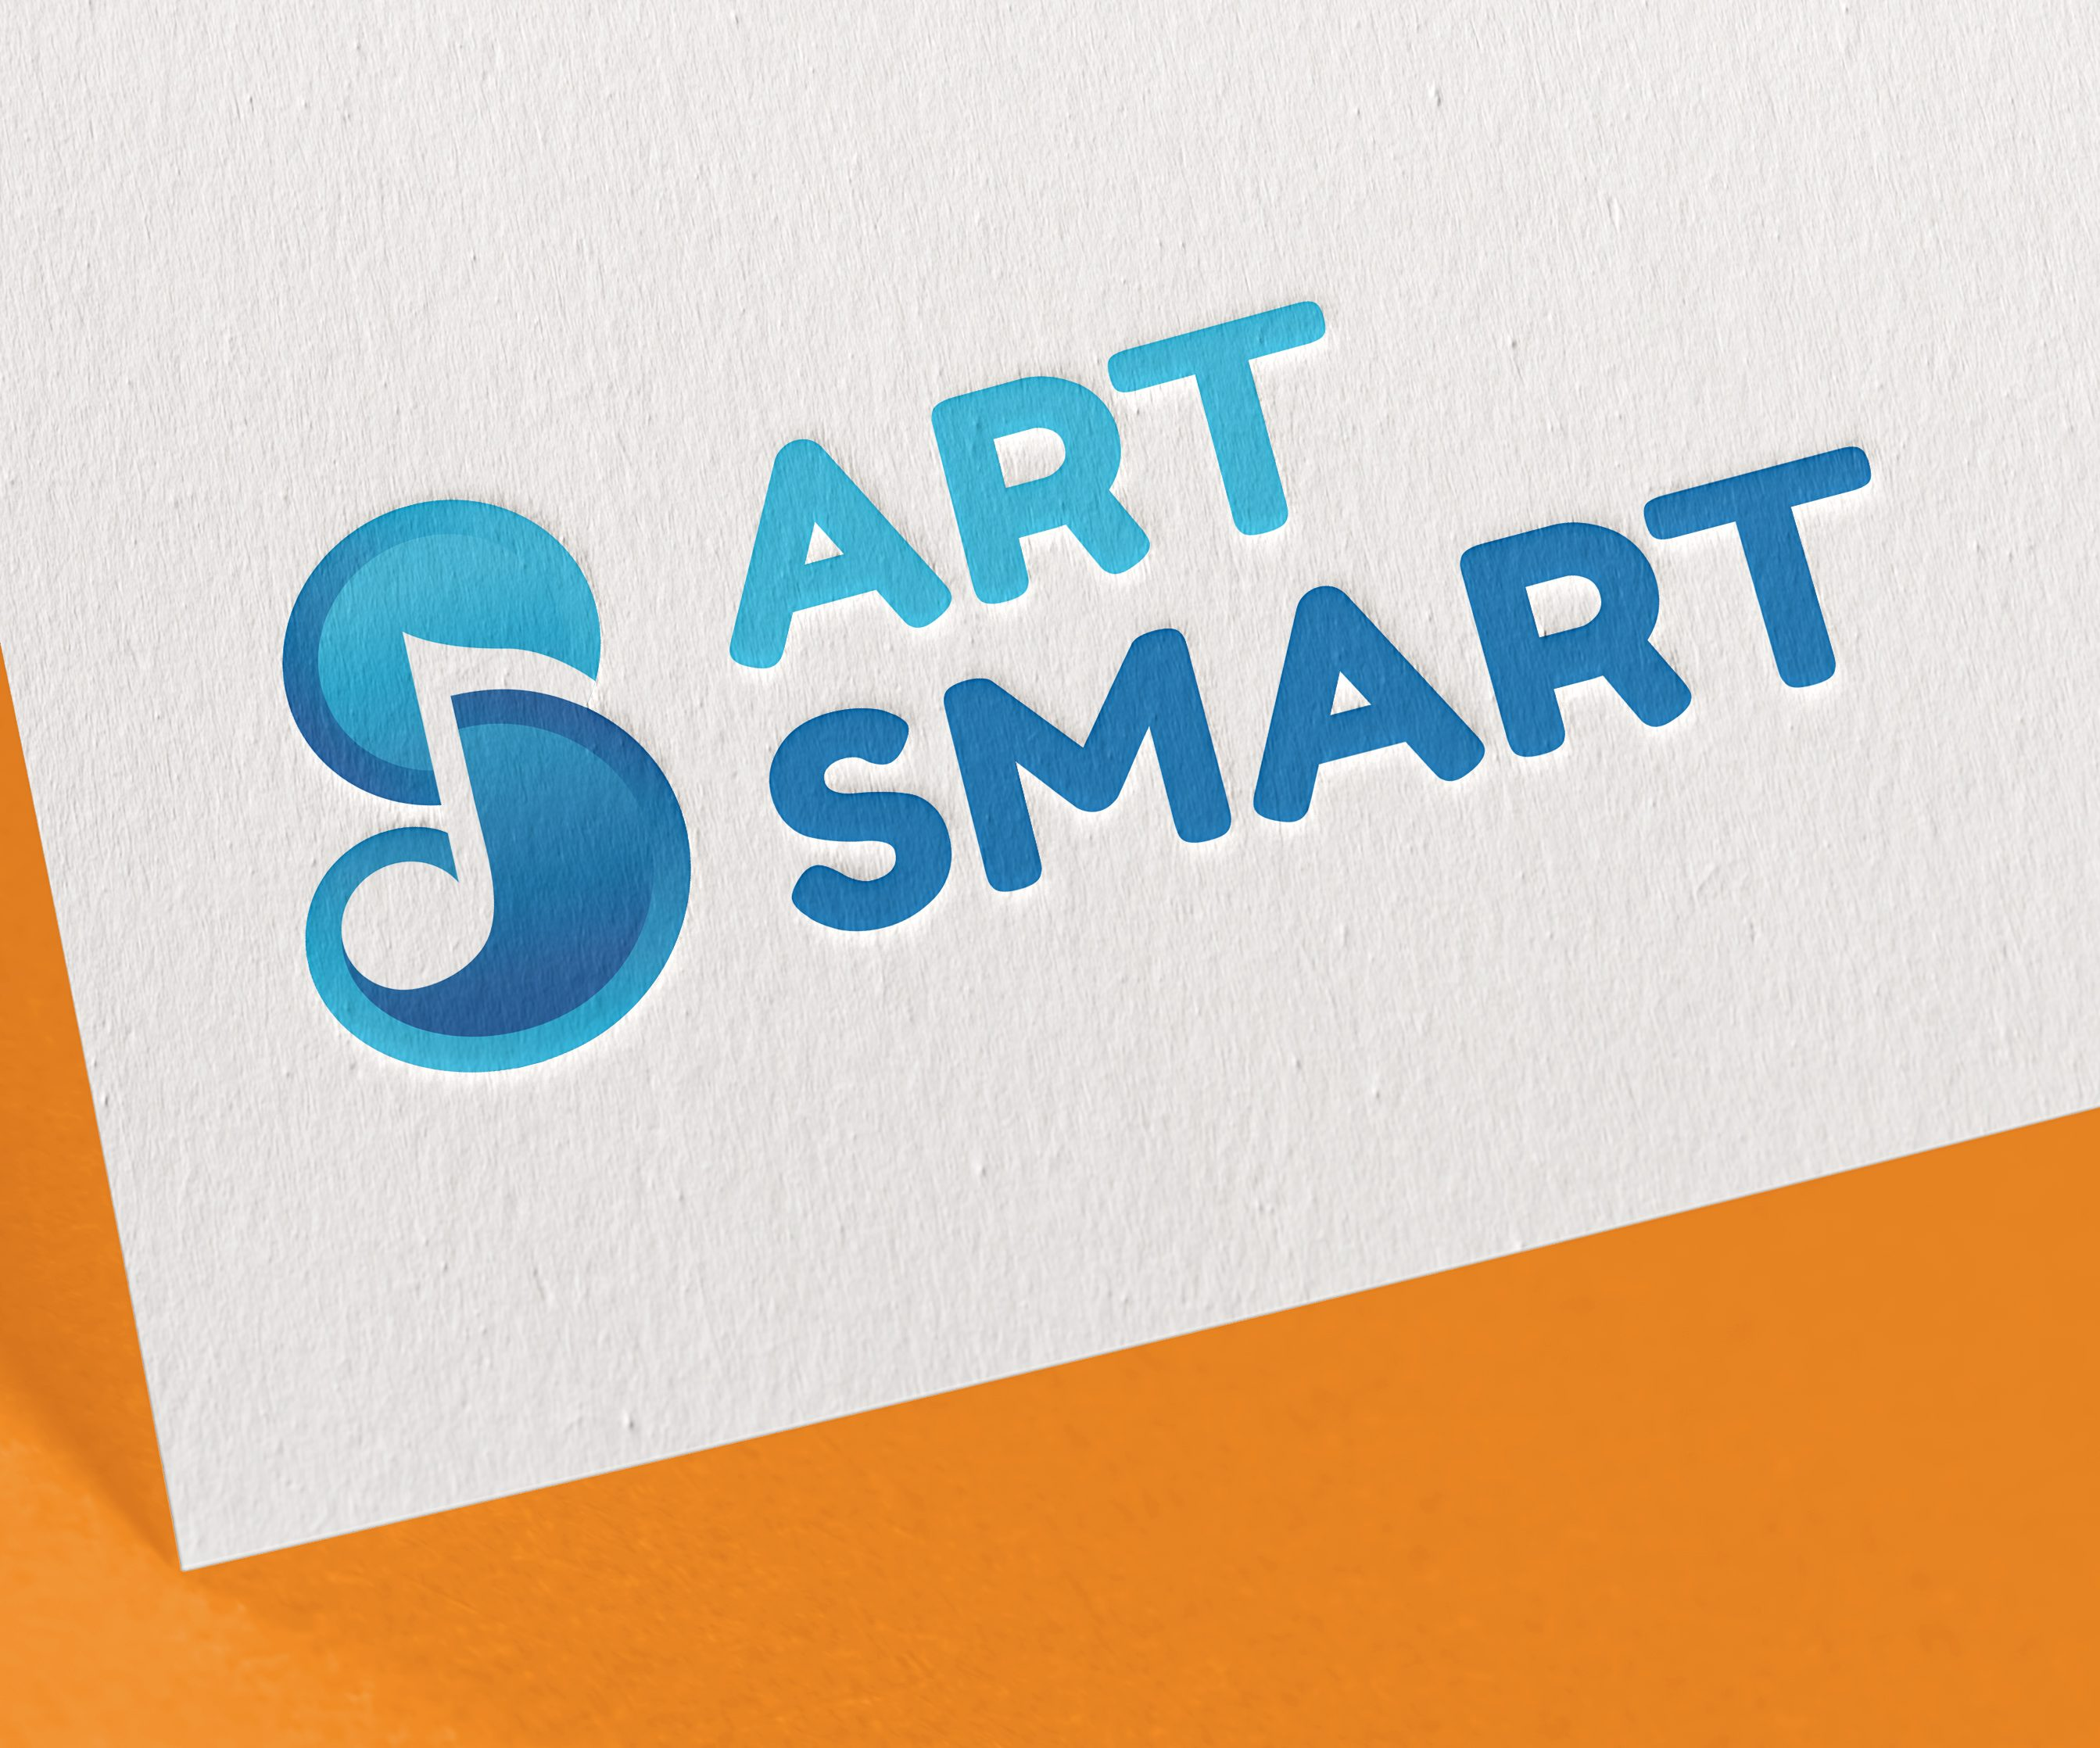 ArtSmart music mentoring charity with Michael Fabiano & John Viscardi – Logo design by Marshall Light Studio